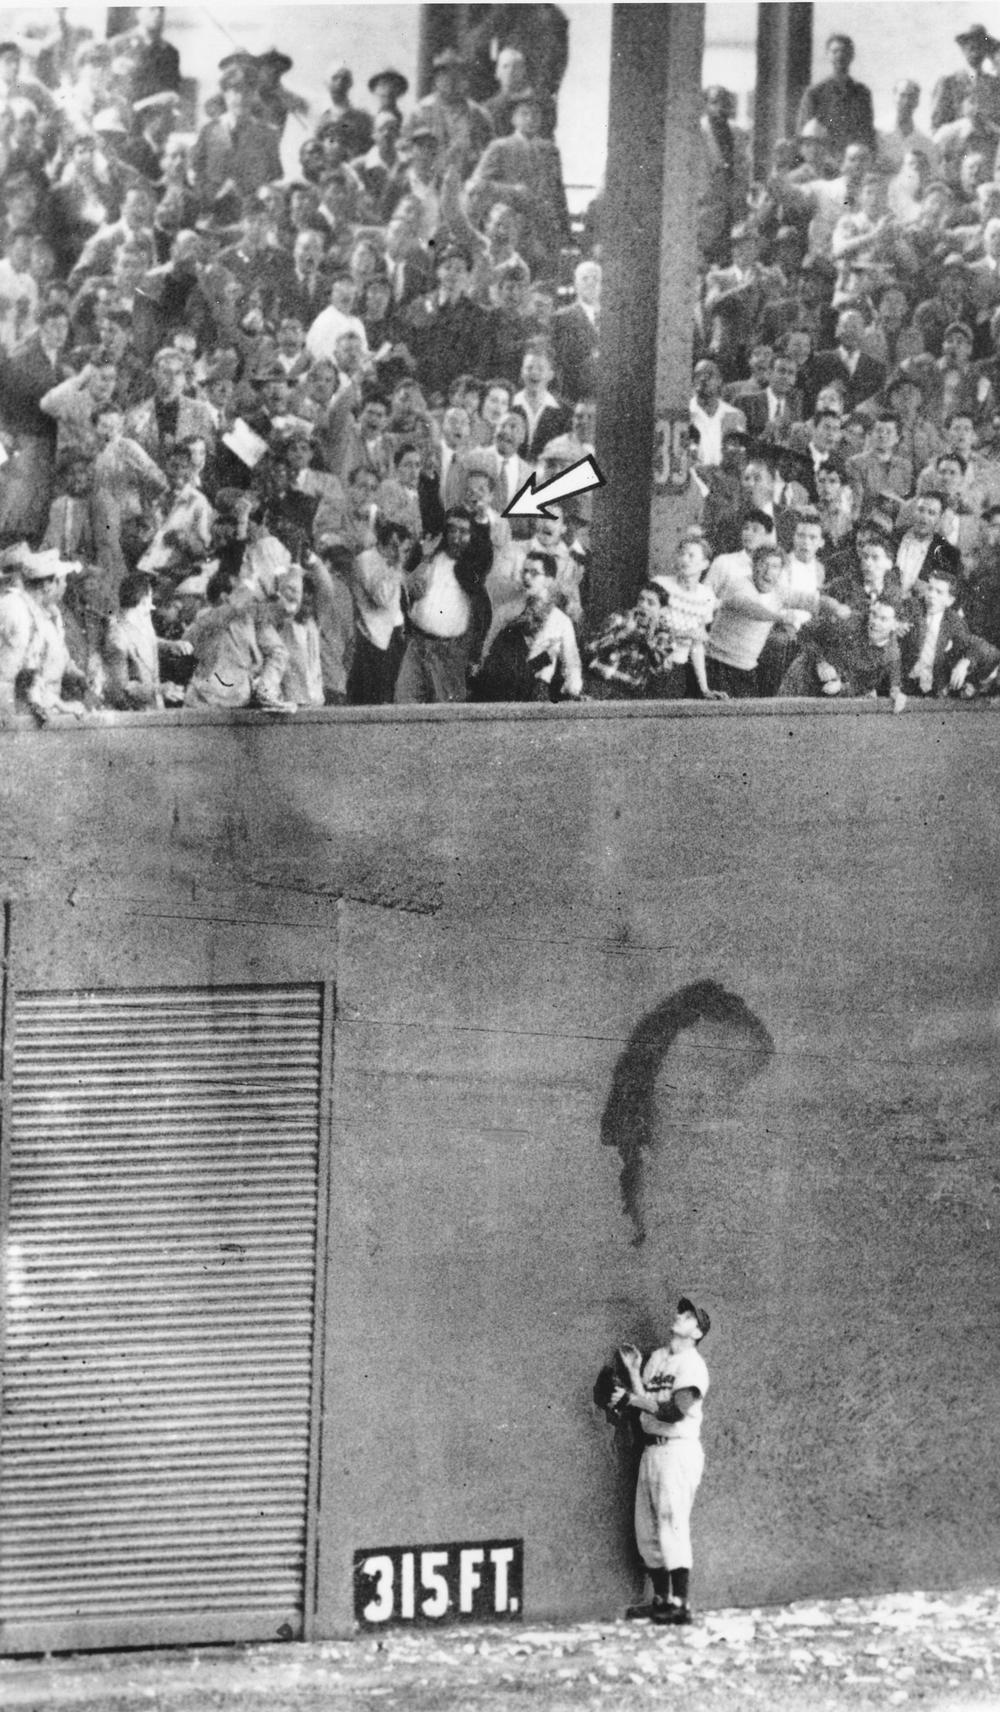 """Brooklyn Dodgers left fielder Andy Pafko watches as """"the miracle ball"""" sails over the wall Oct. 3, 1951. (AP)"""